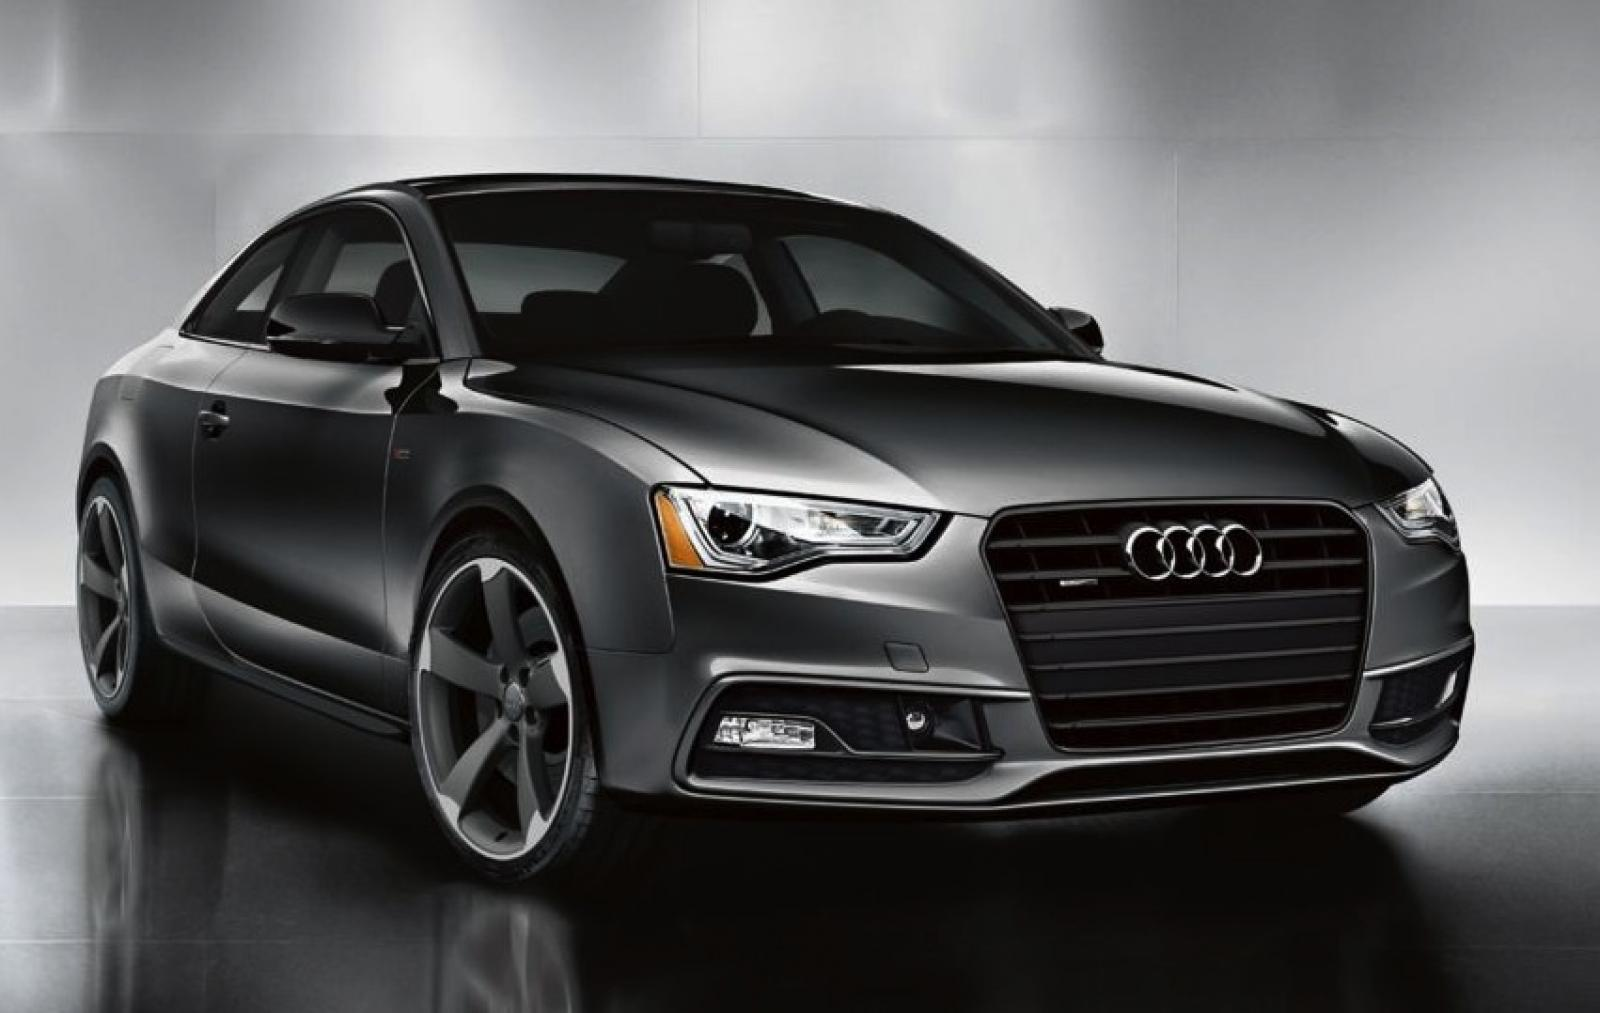 2015 audi a5 information and photos zombiedrive. Black Bedroom Furniture Sets. Home Design Ideas